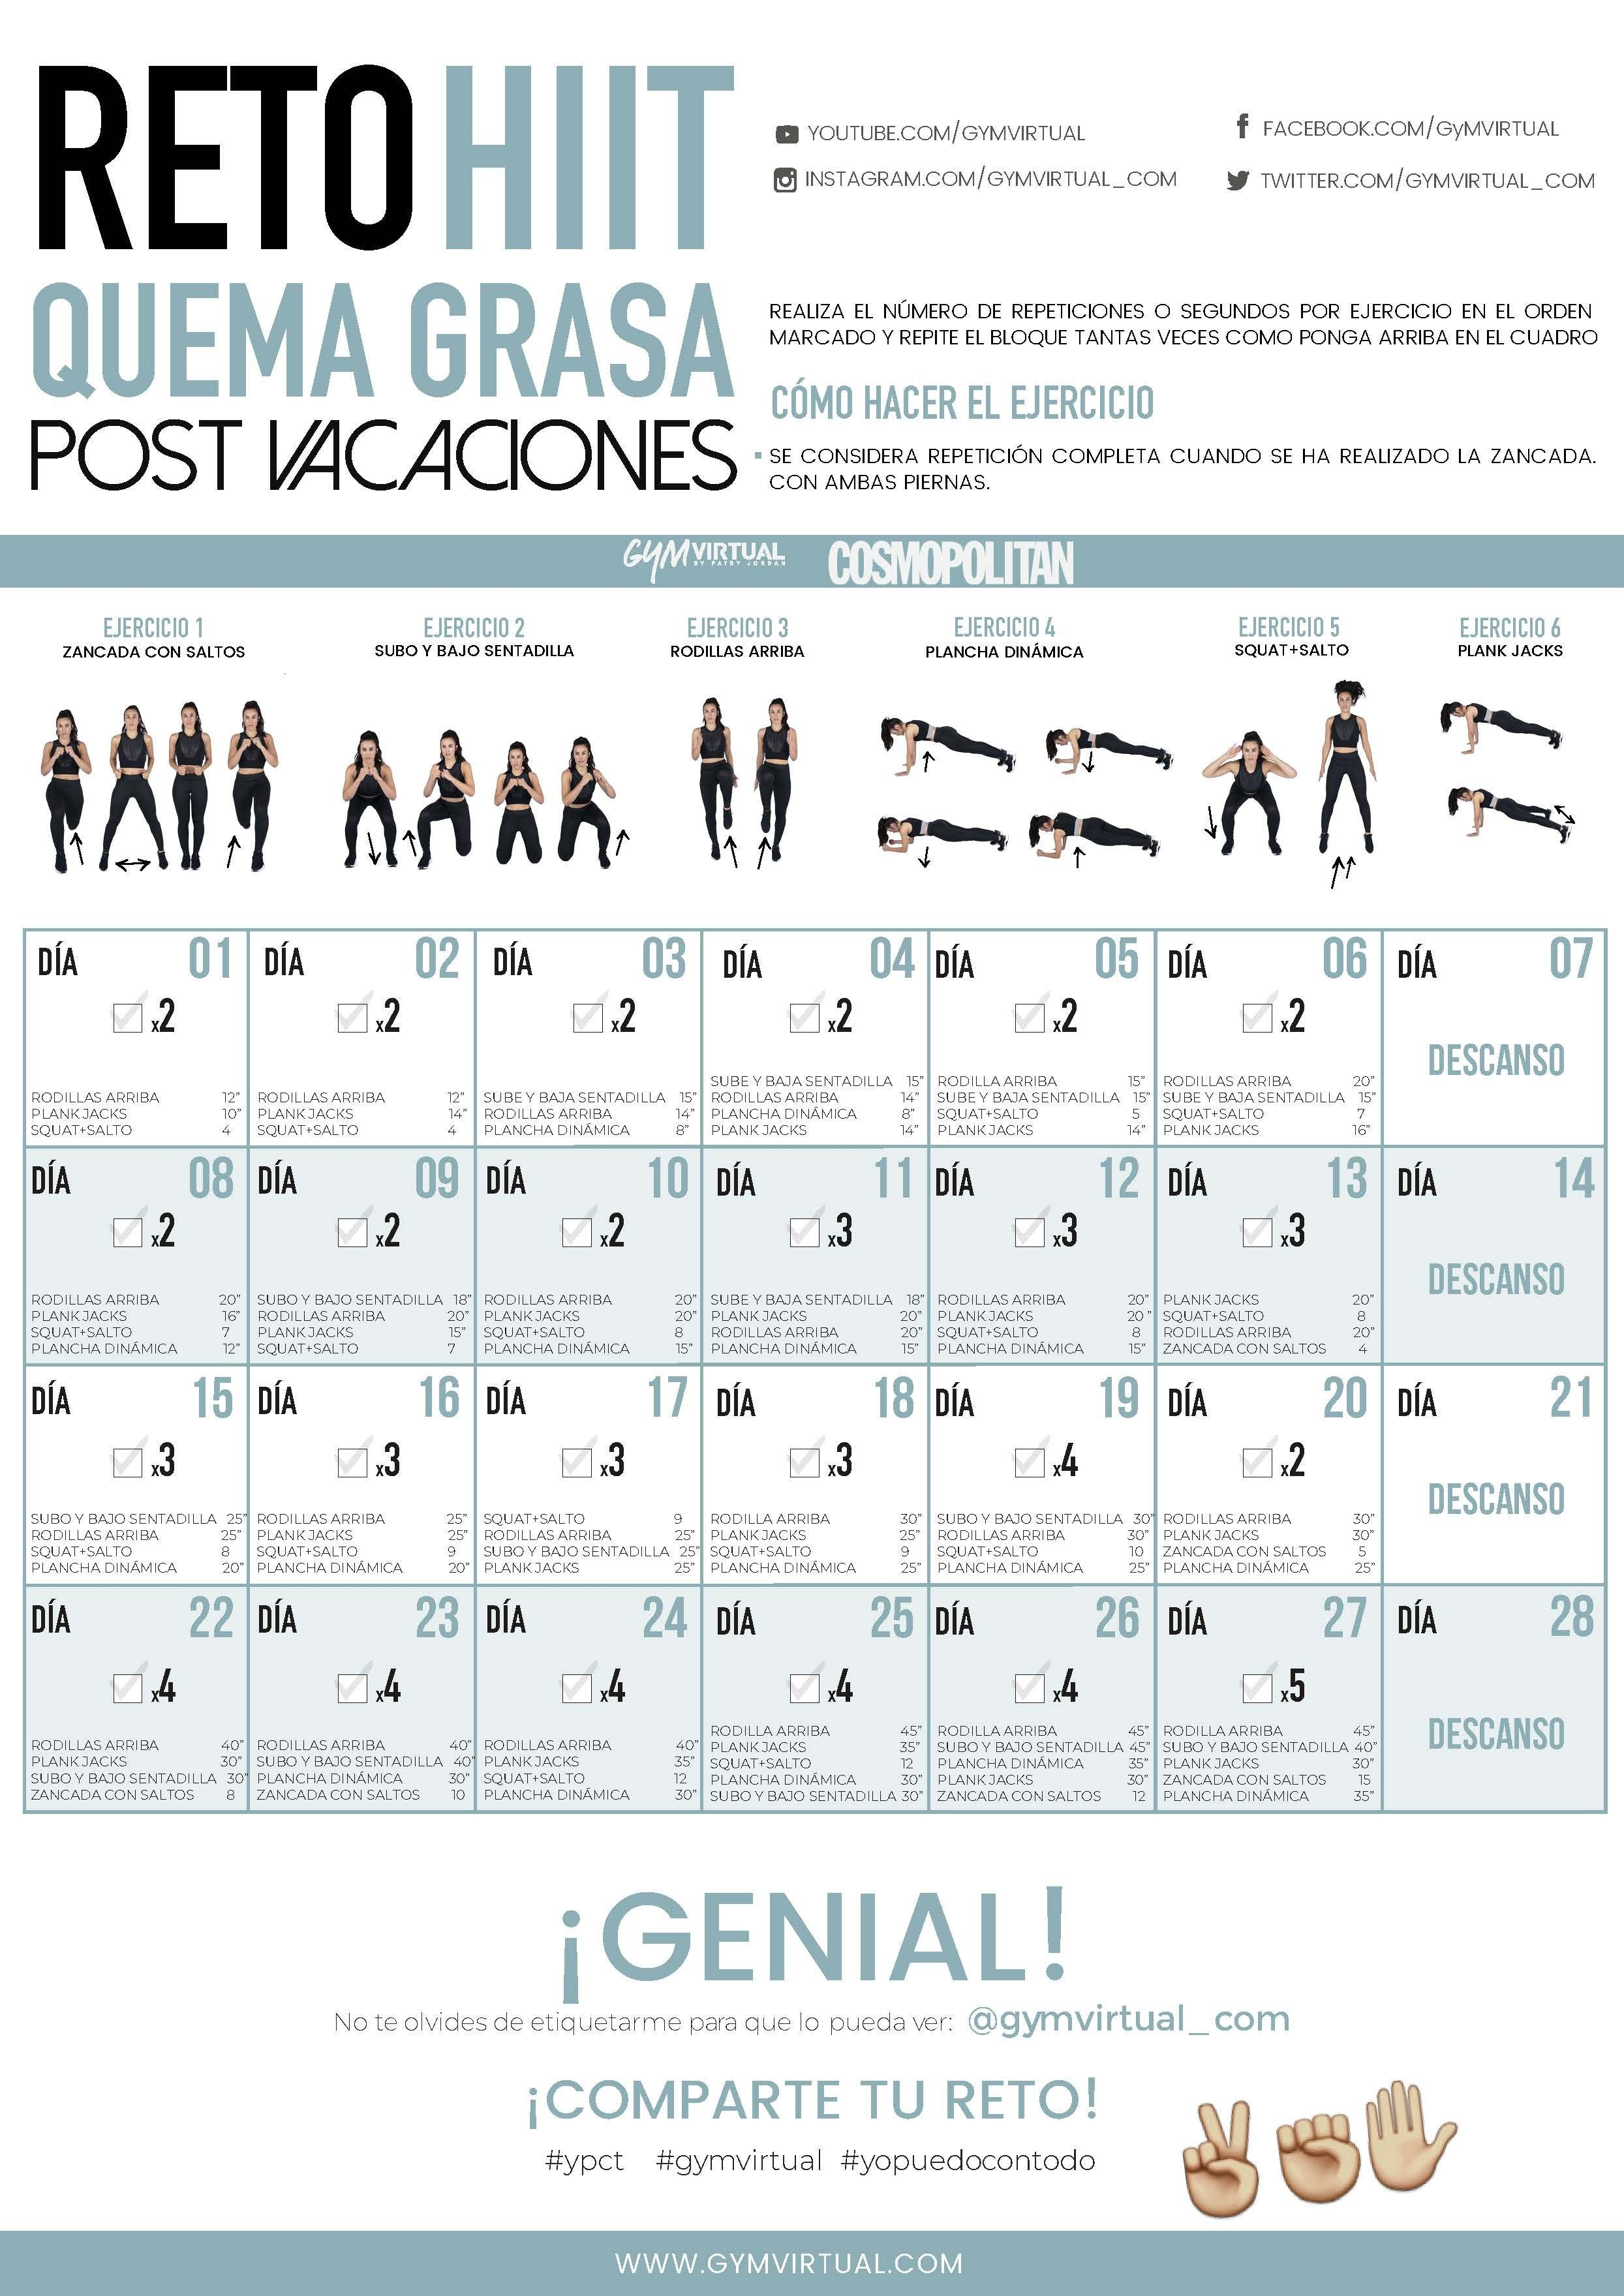 Calendario Vacunas 2017 Para Imprimir Más Recientemente Liberado Calendario Patry Jordan Of Calendario Vacunas 2017 Para Imprimir Más Recientemente Liberado Calendario Ninos